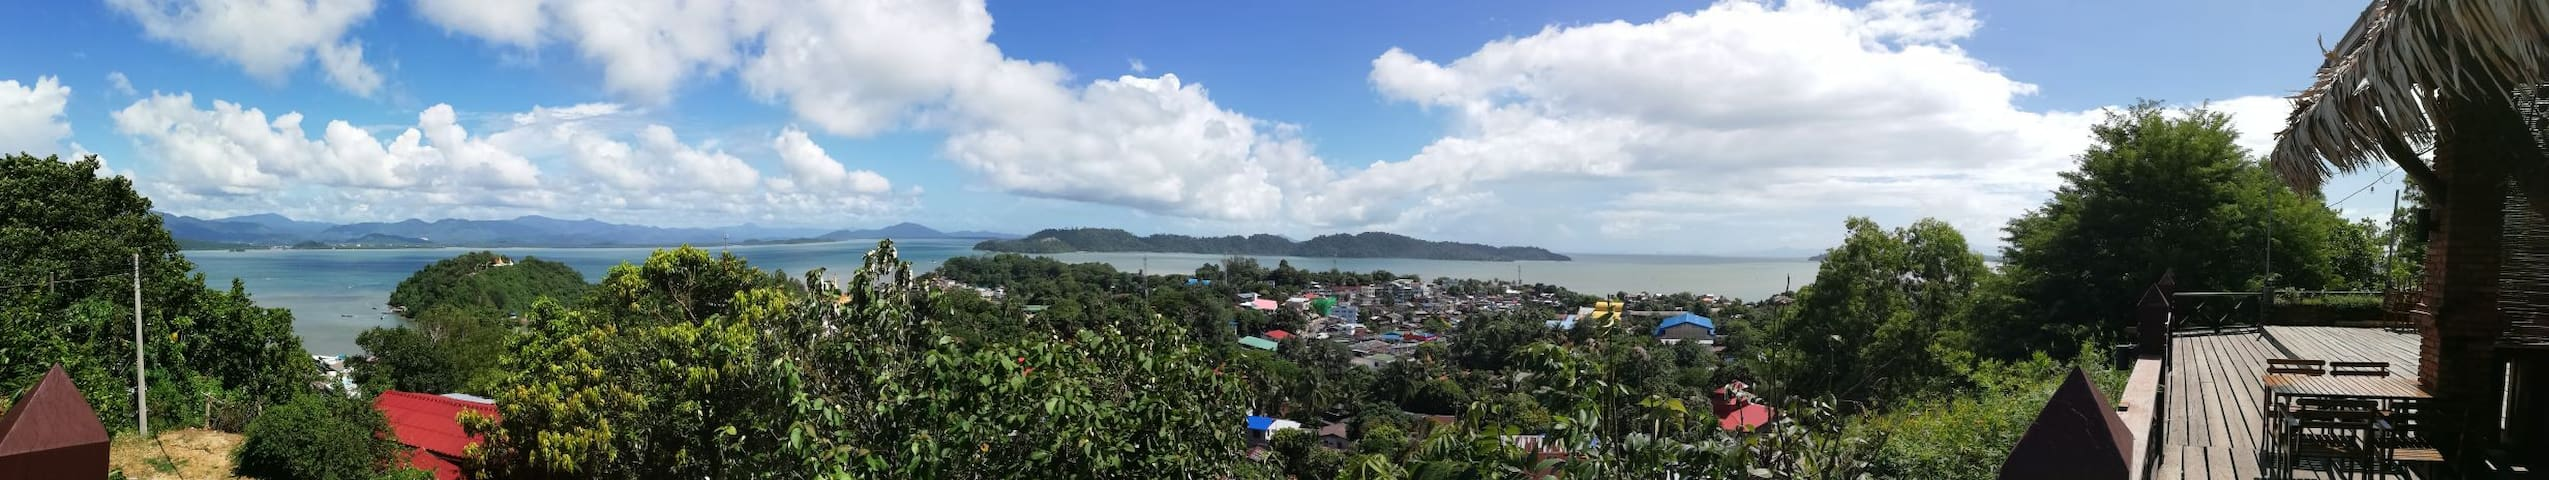 The view from Mingalar